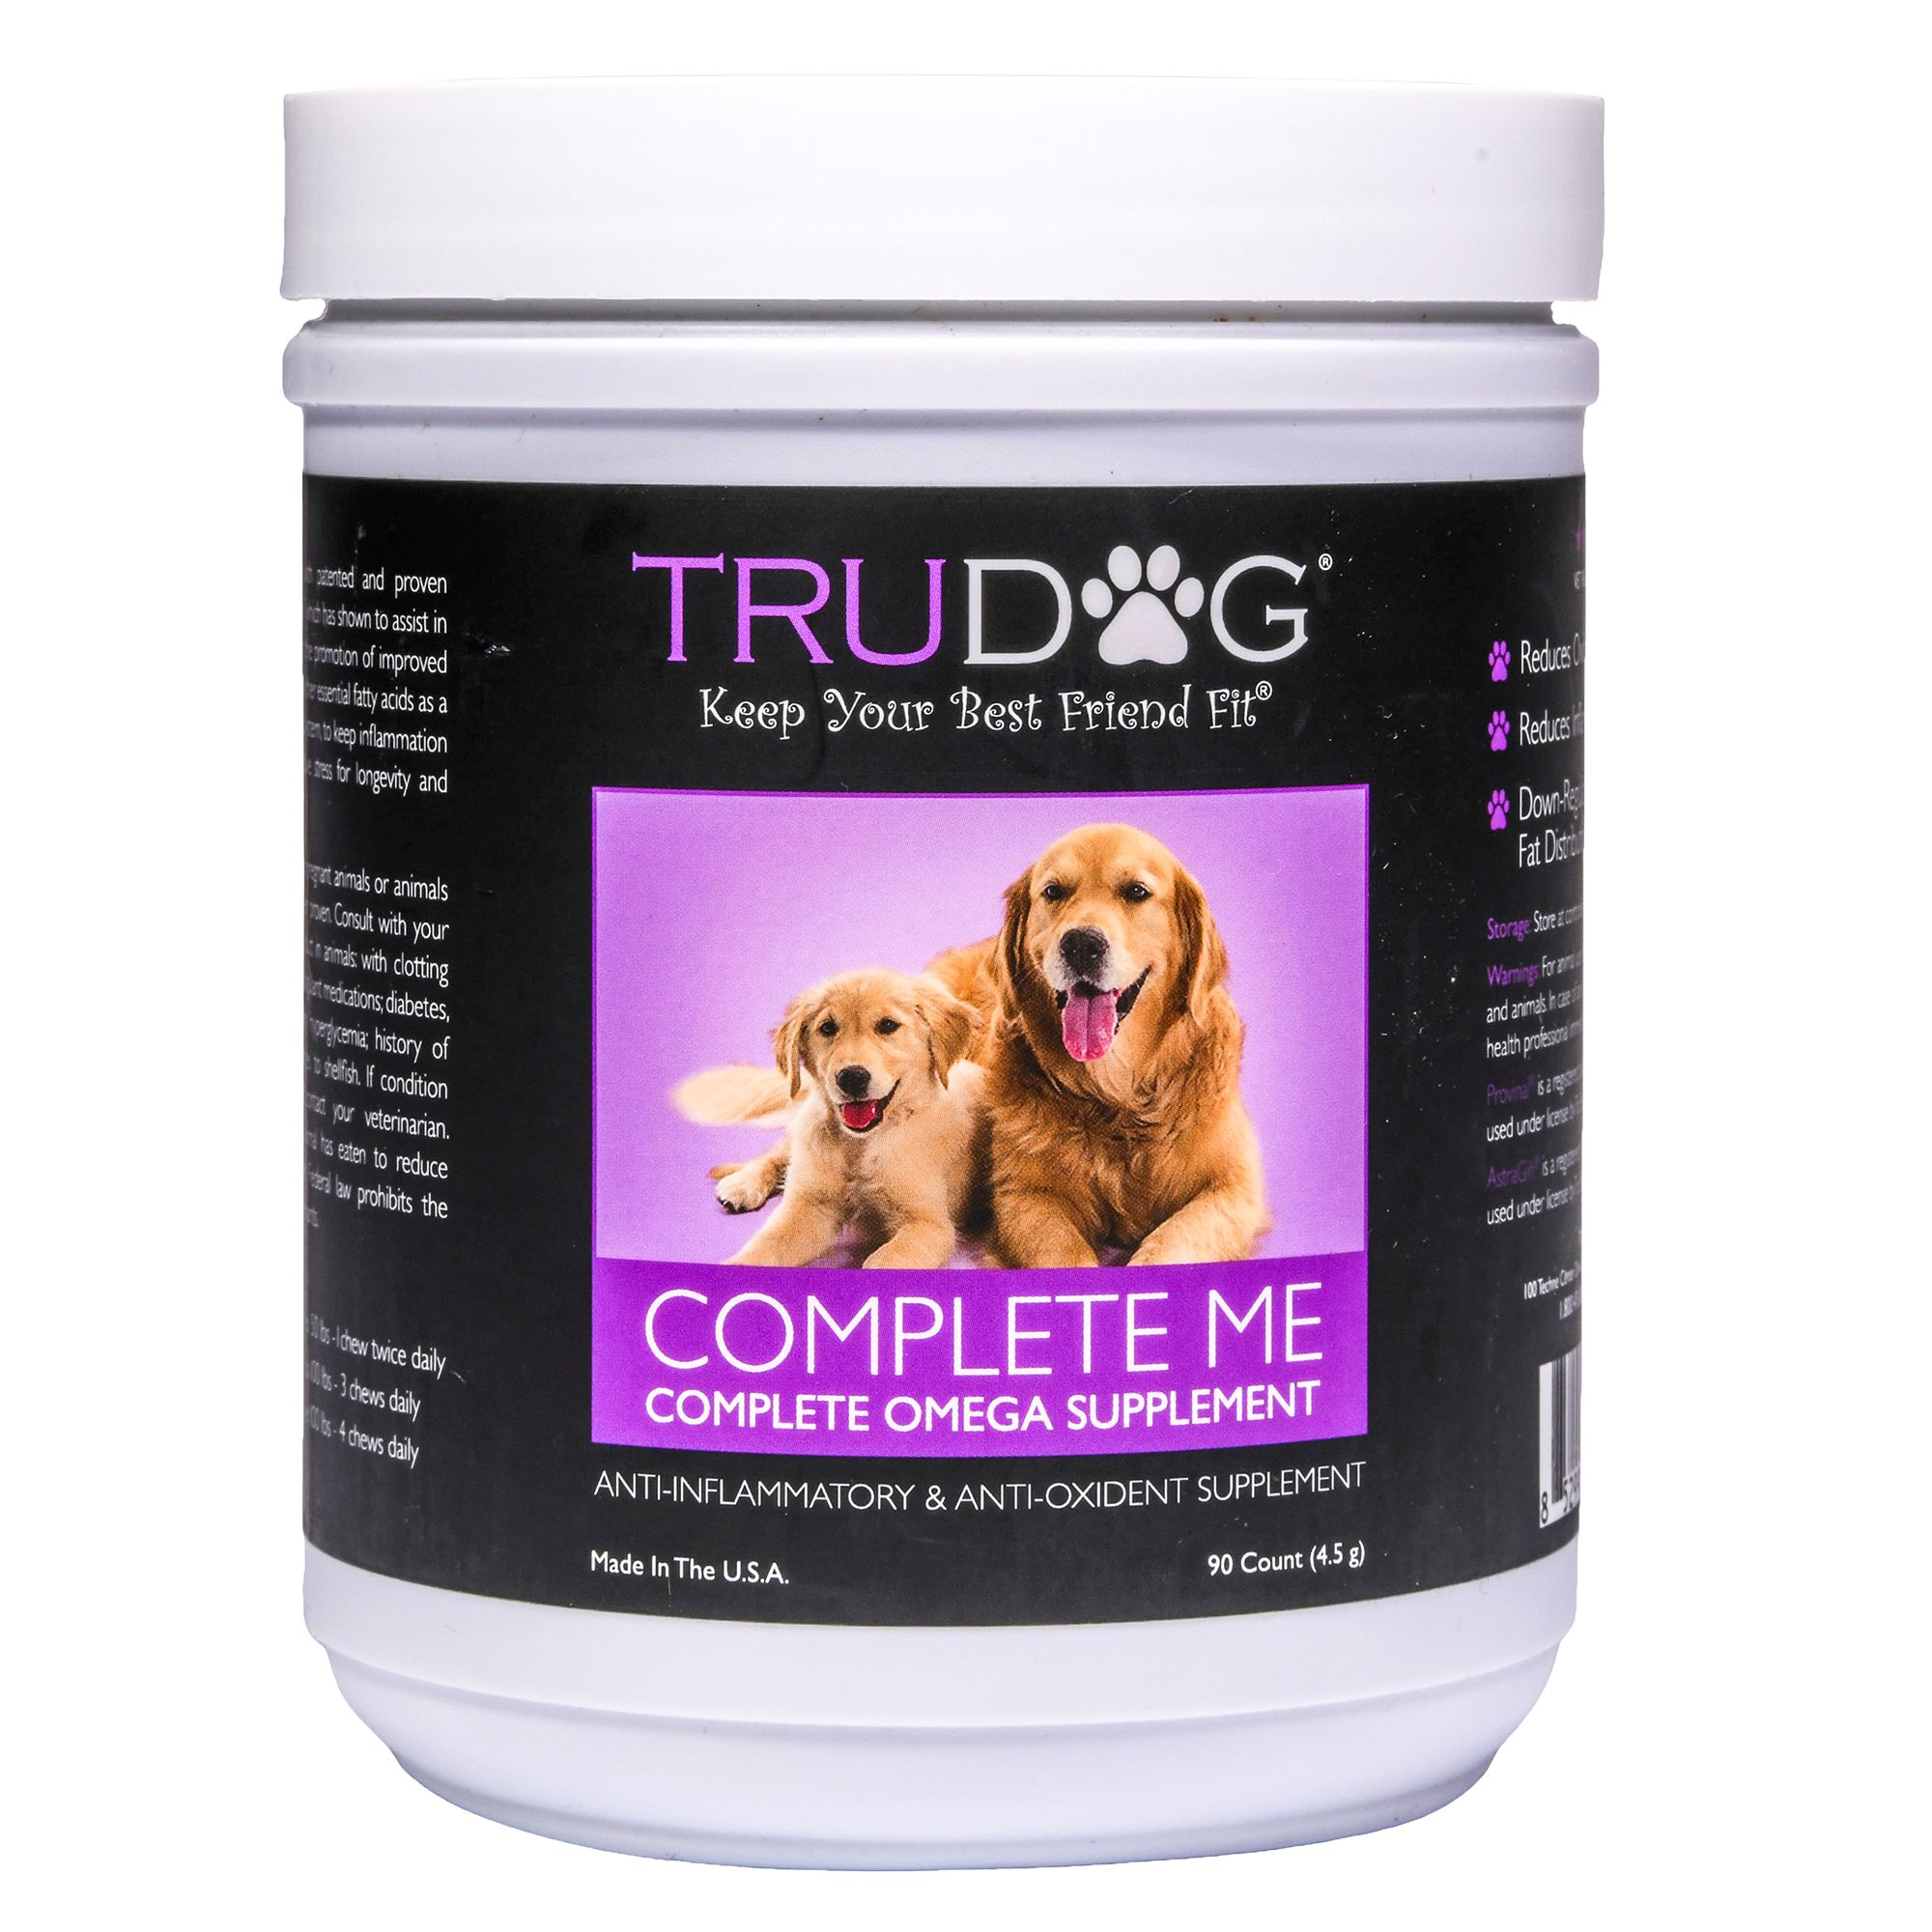 Trudog Complete Me Anti Inflammatory And Anti Oxidant Dog Supplement